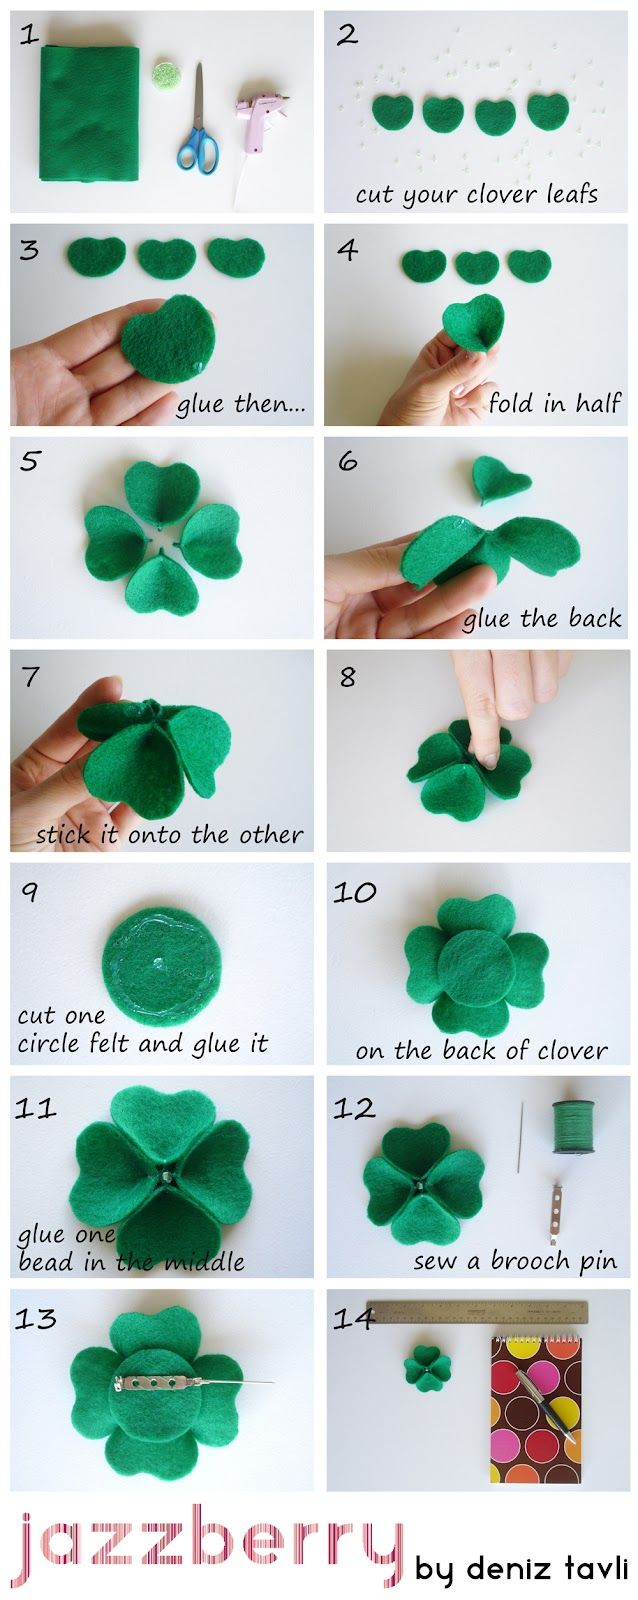 jazzberry by deniz tavli: DIY: Felt Clover